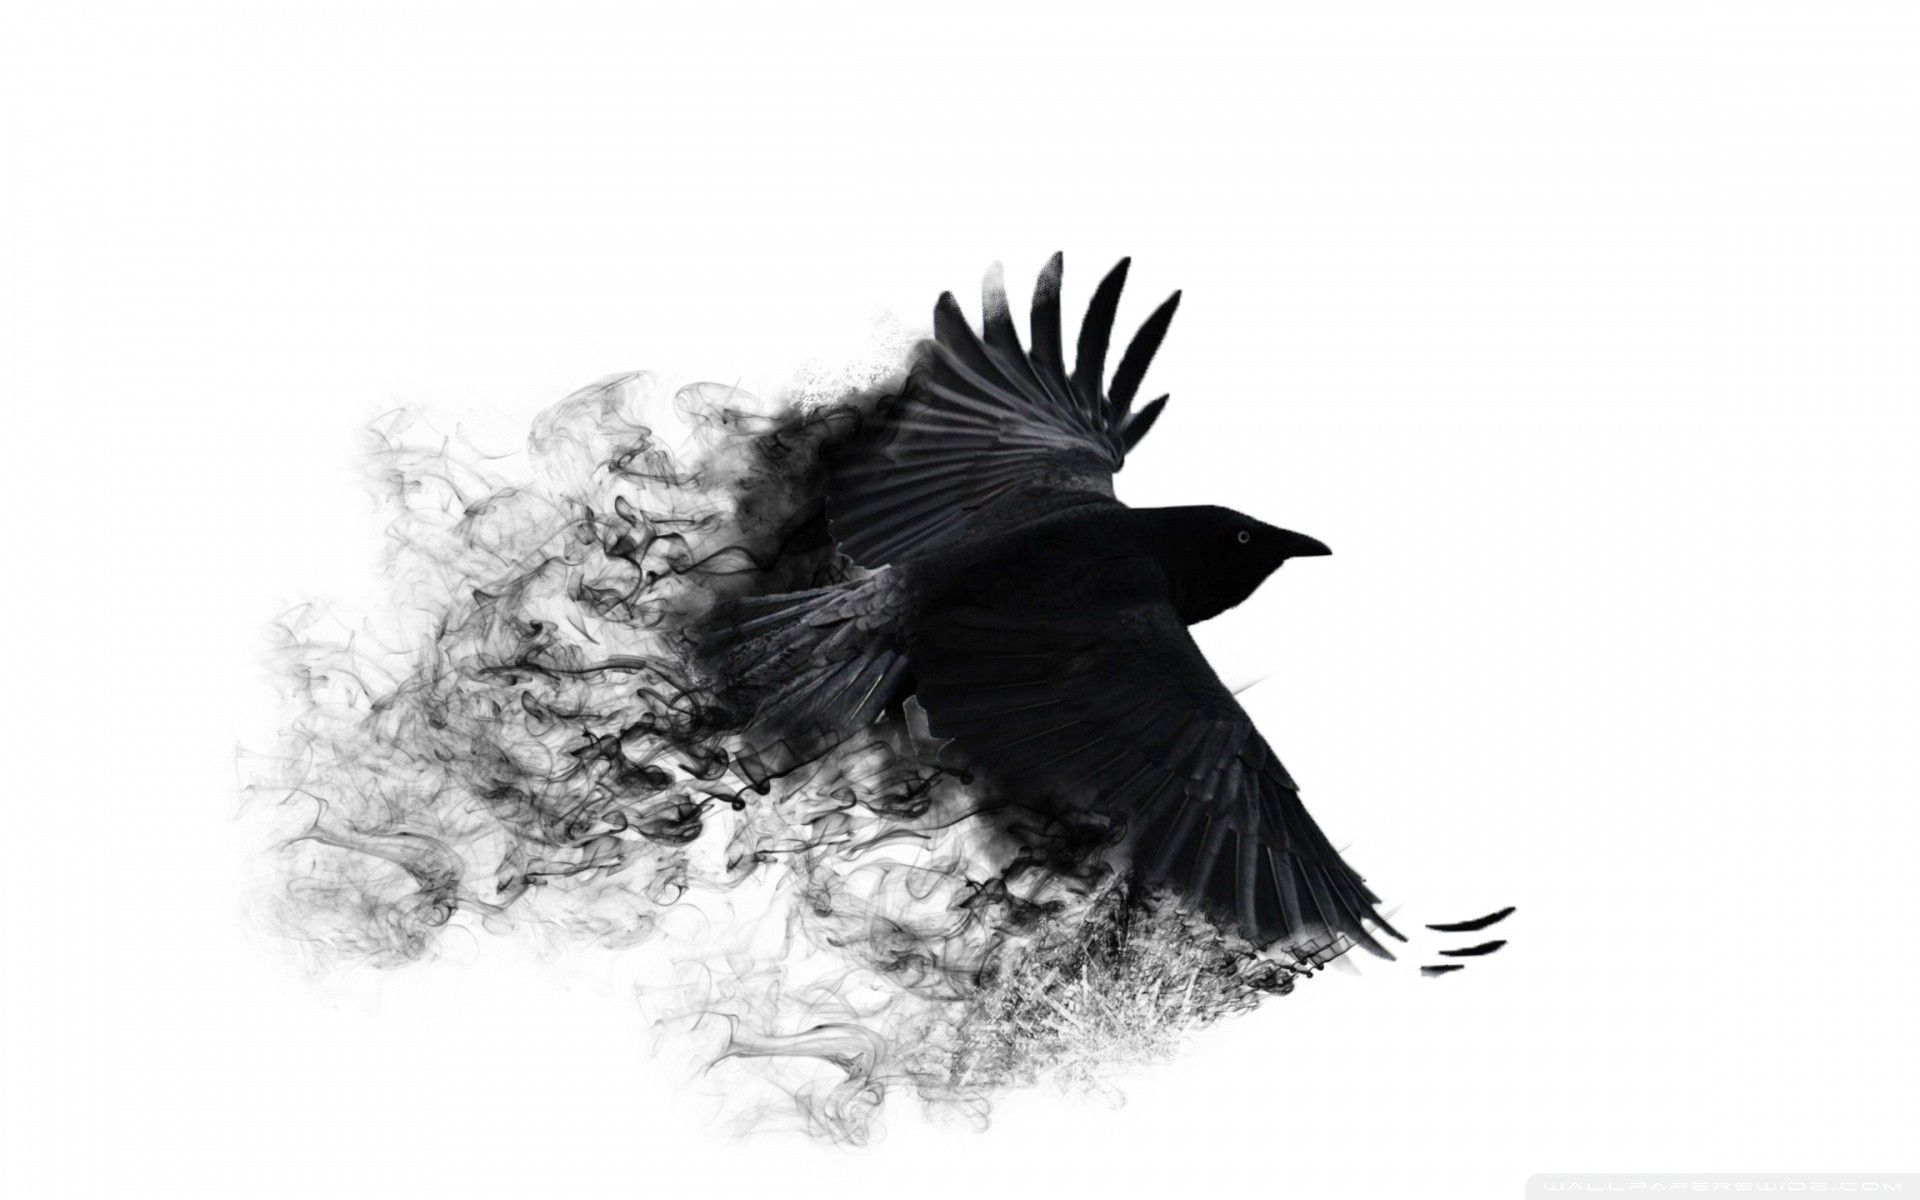 111166 download wallpaper Abstract, Crow, Wings, Bird, Sweep, Wave screensavers and pictures for free